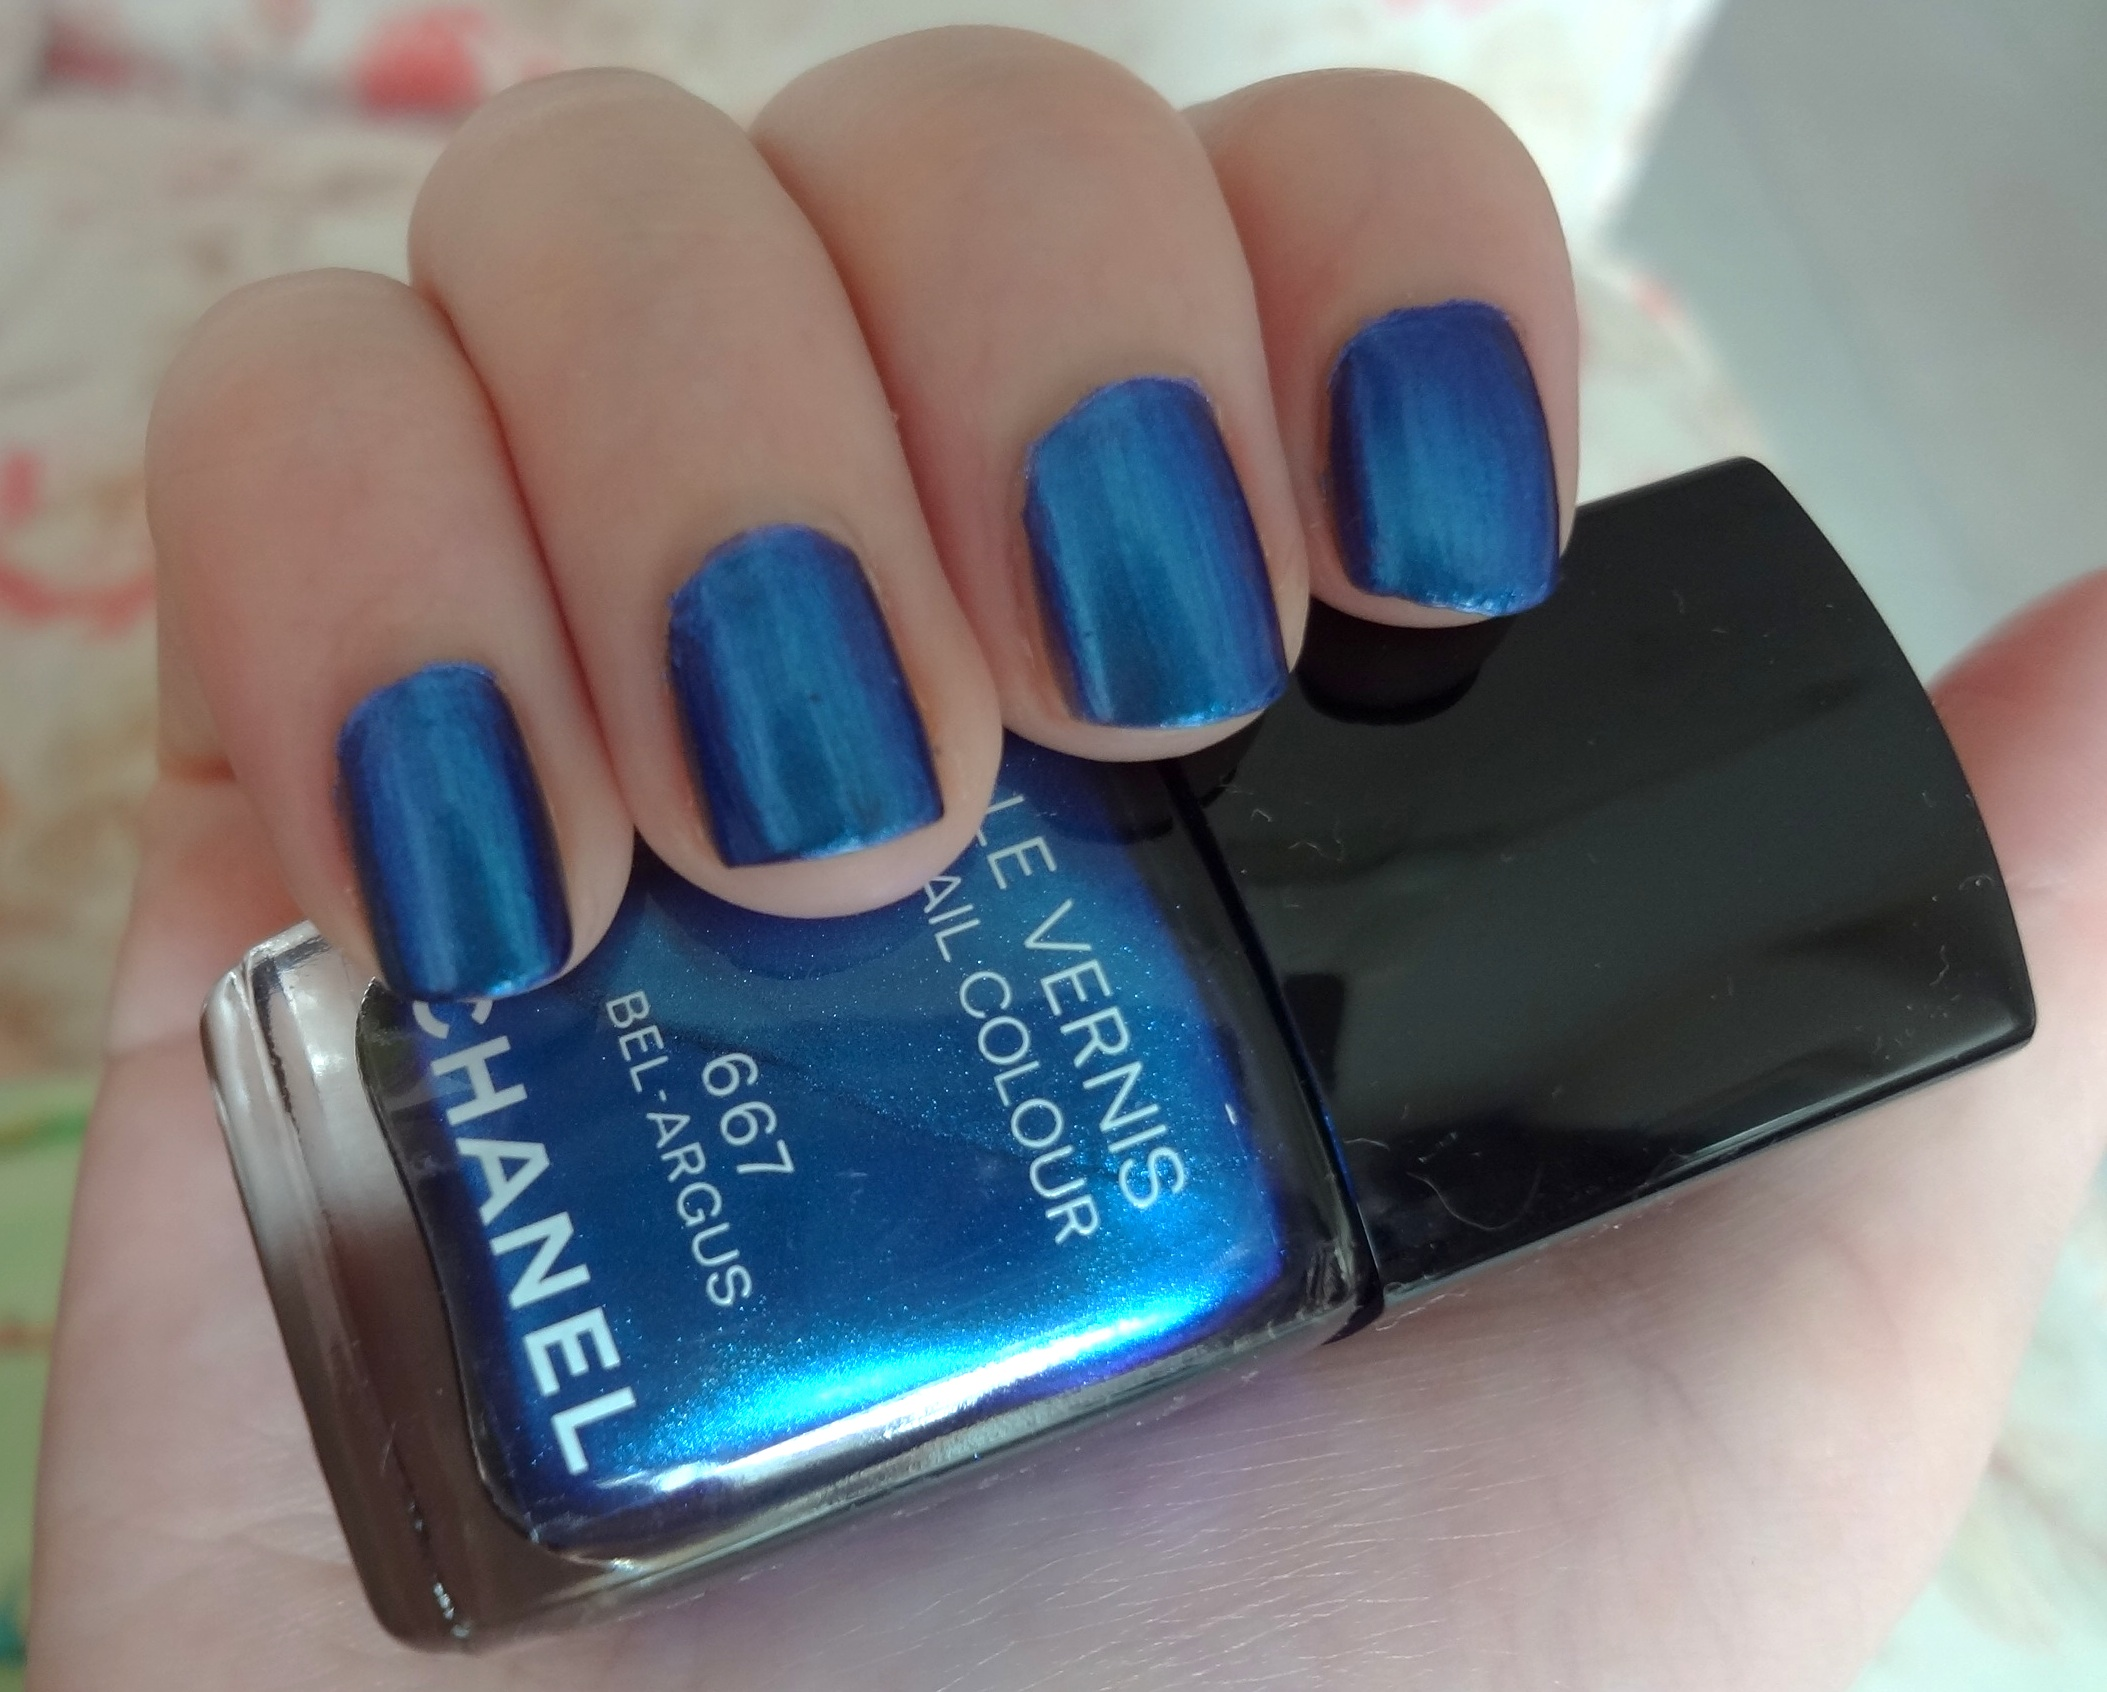 Chanel Bel Argus nail polish review | Through The Looking Glass